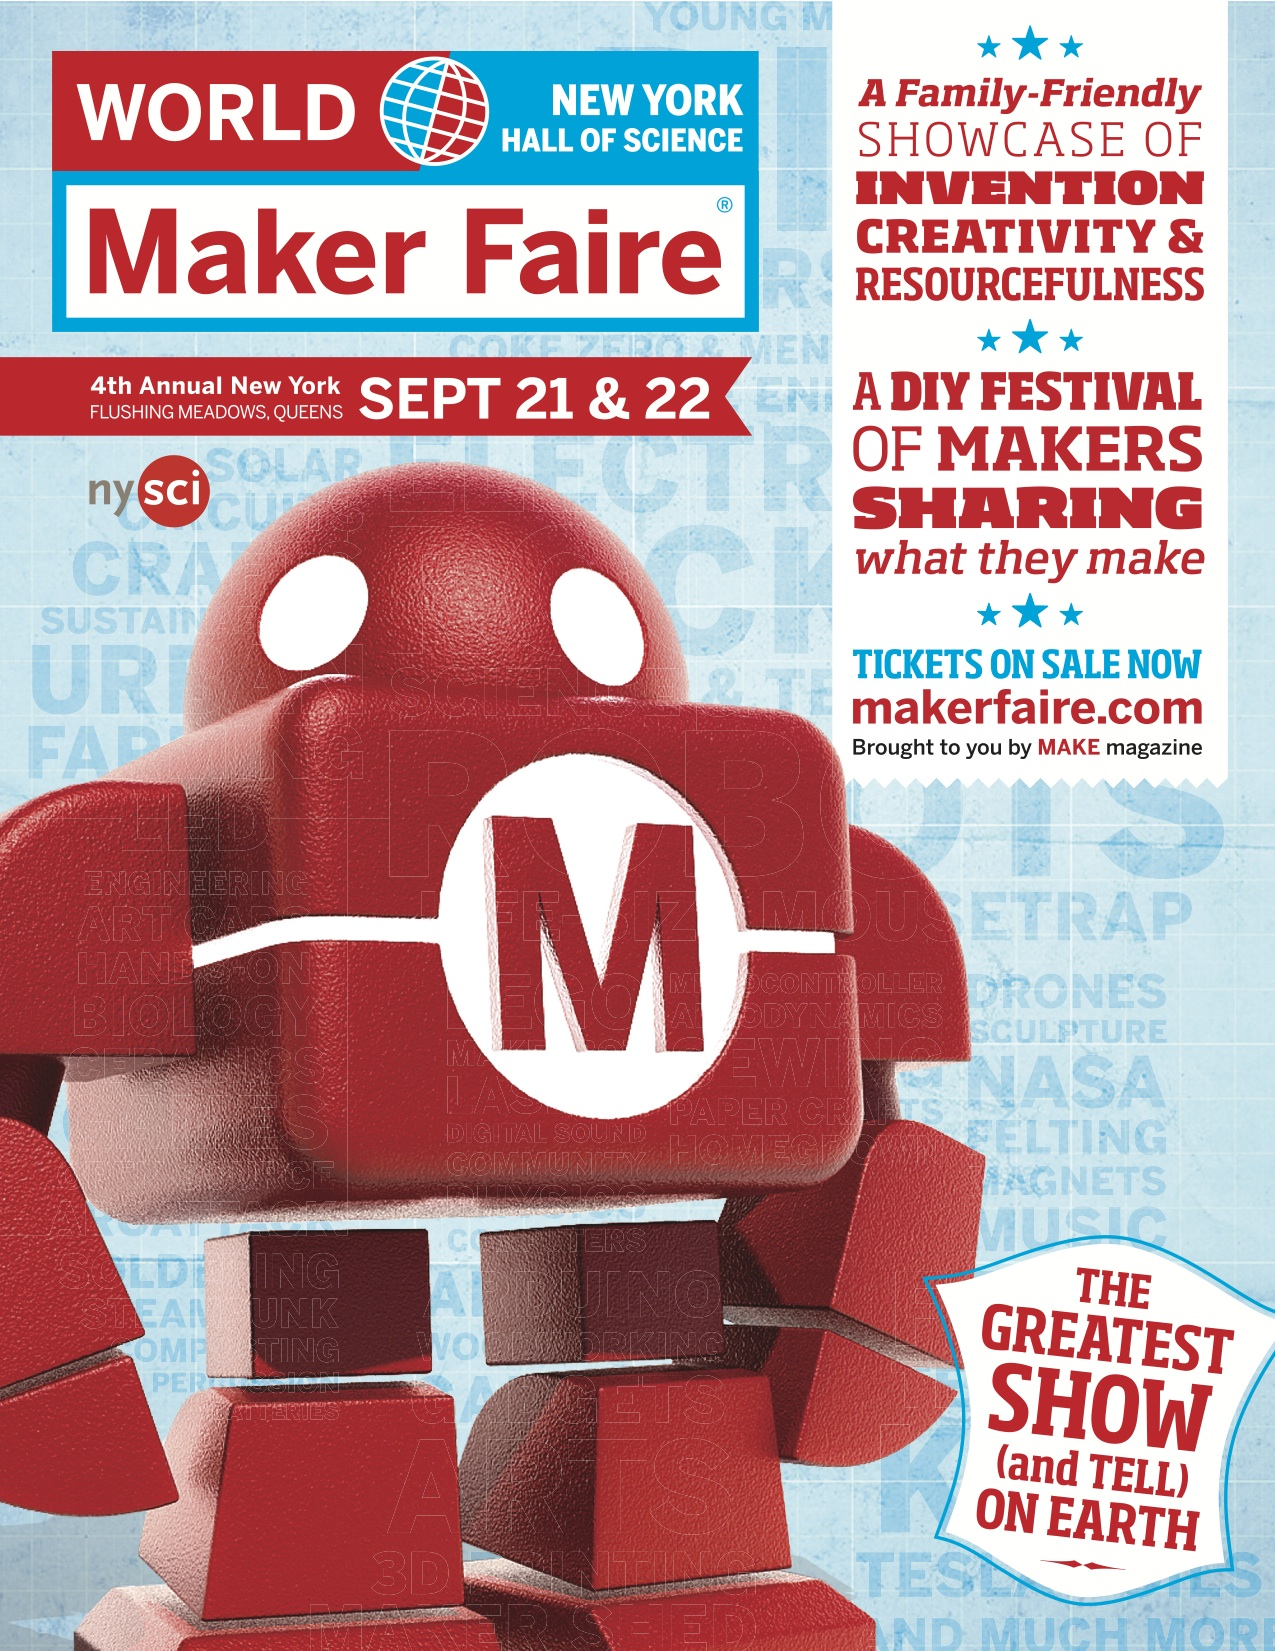 [Interested in Attending the Maker Faire on Saturday, September 21?]